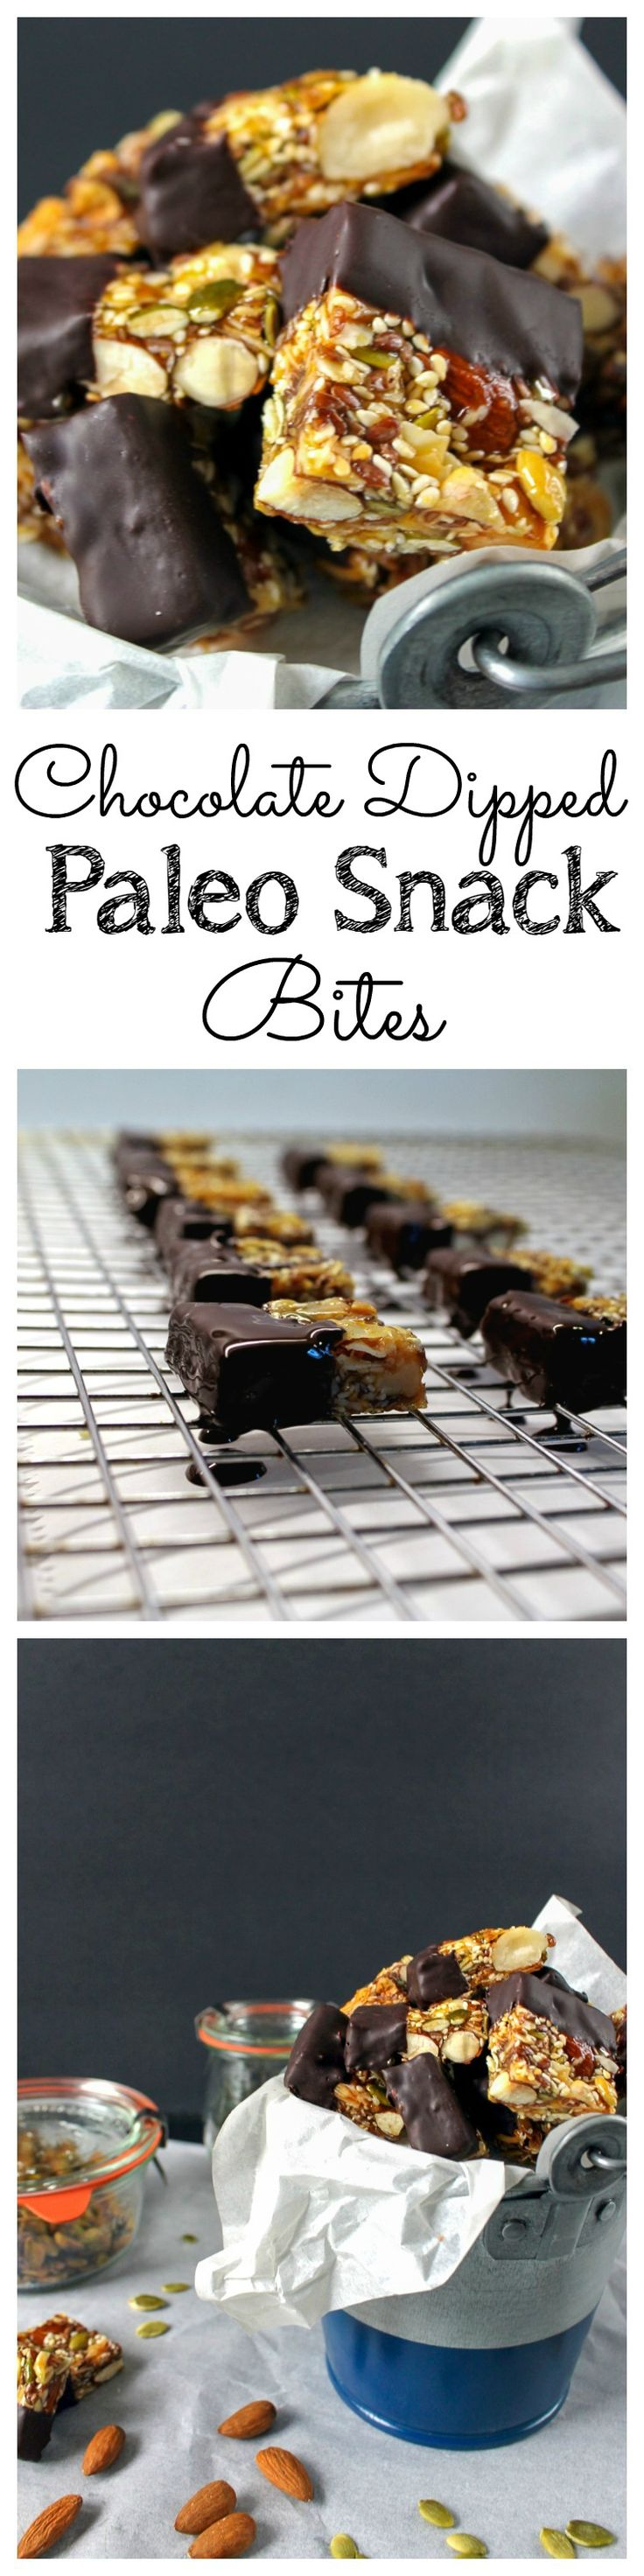 These bite-sized snack bars are filled with nuts and seeds and held together with honey. These are great for those on Paleo or clean eating diets! Gluten free too! Chocolate Dipped Paleo Snack Bars Recipe   Take Two Tapas